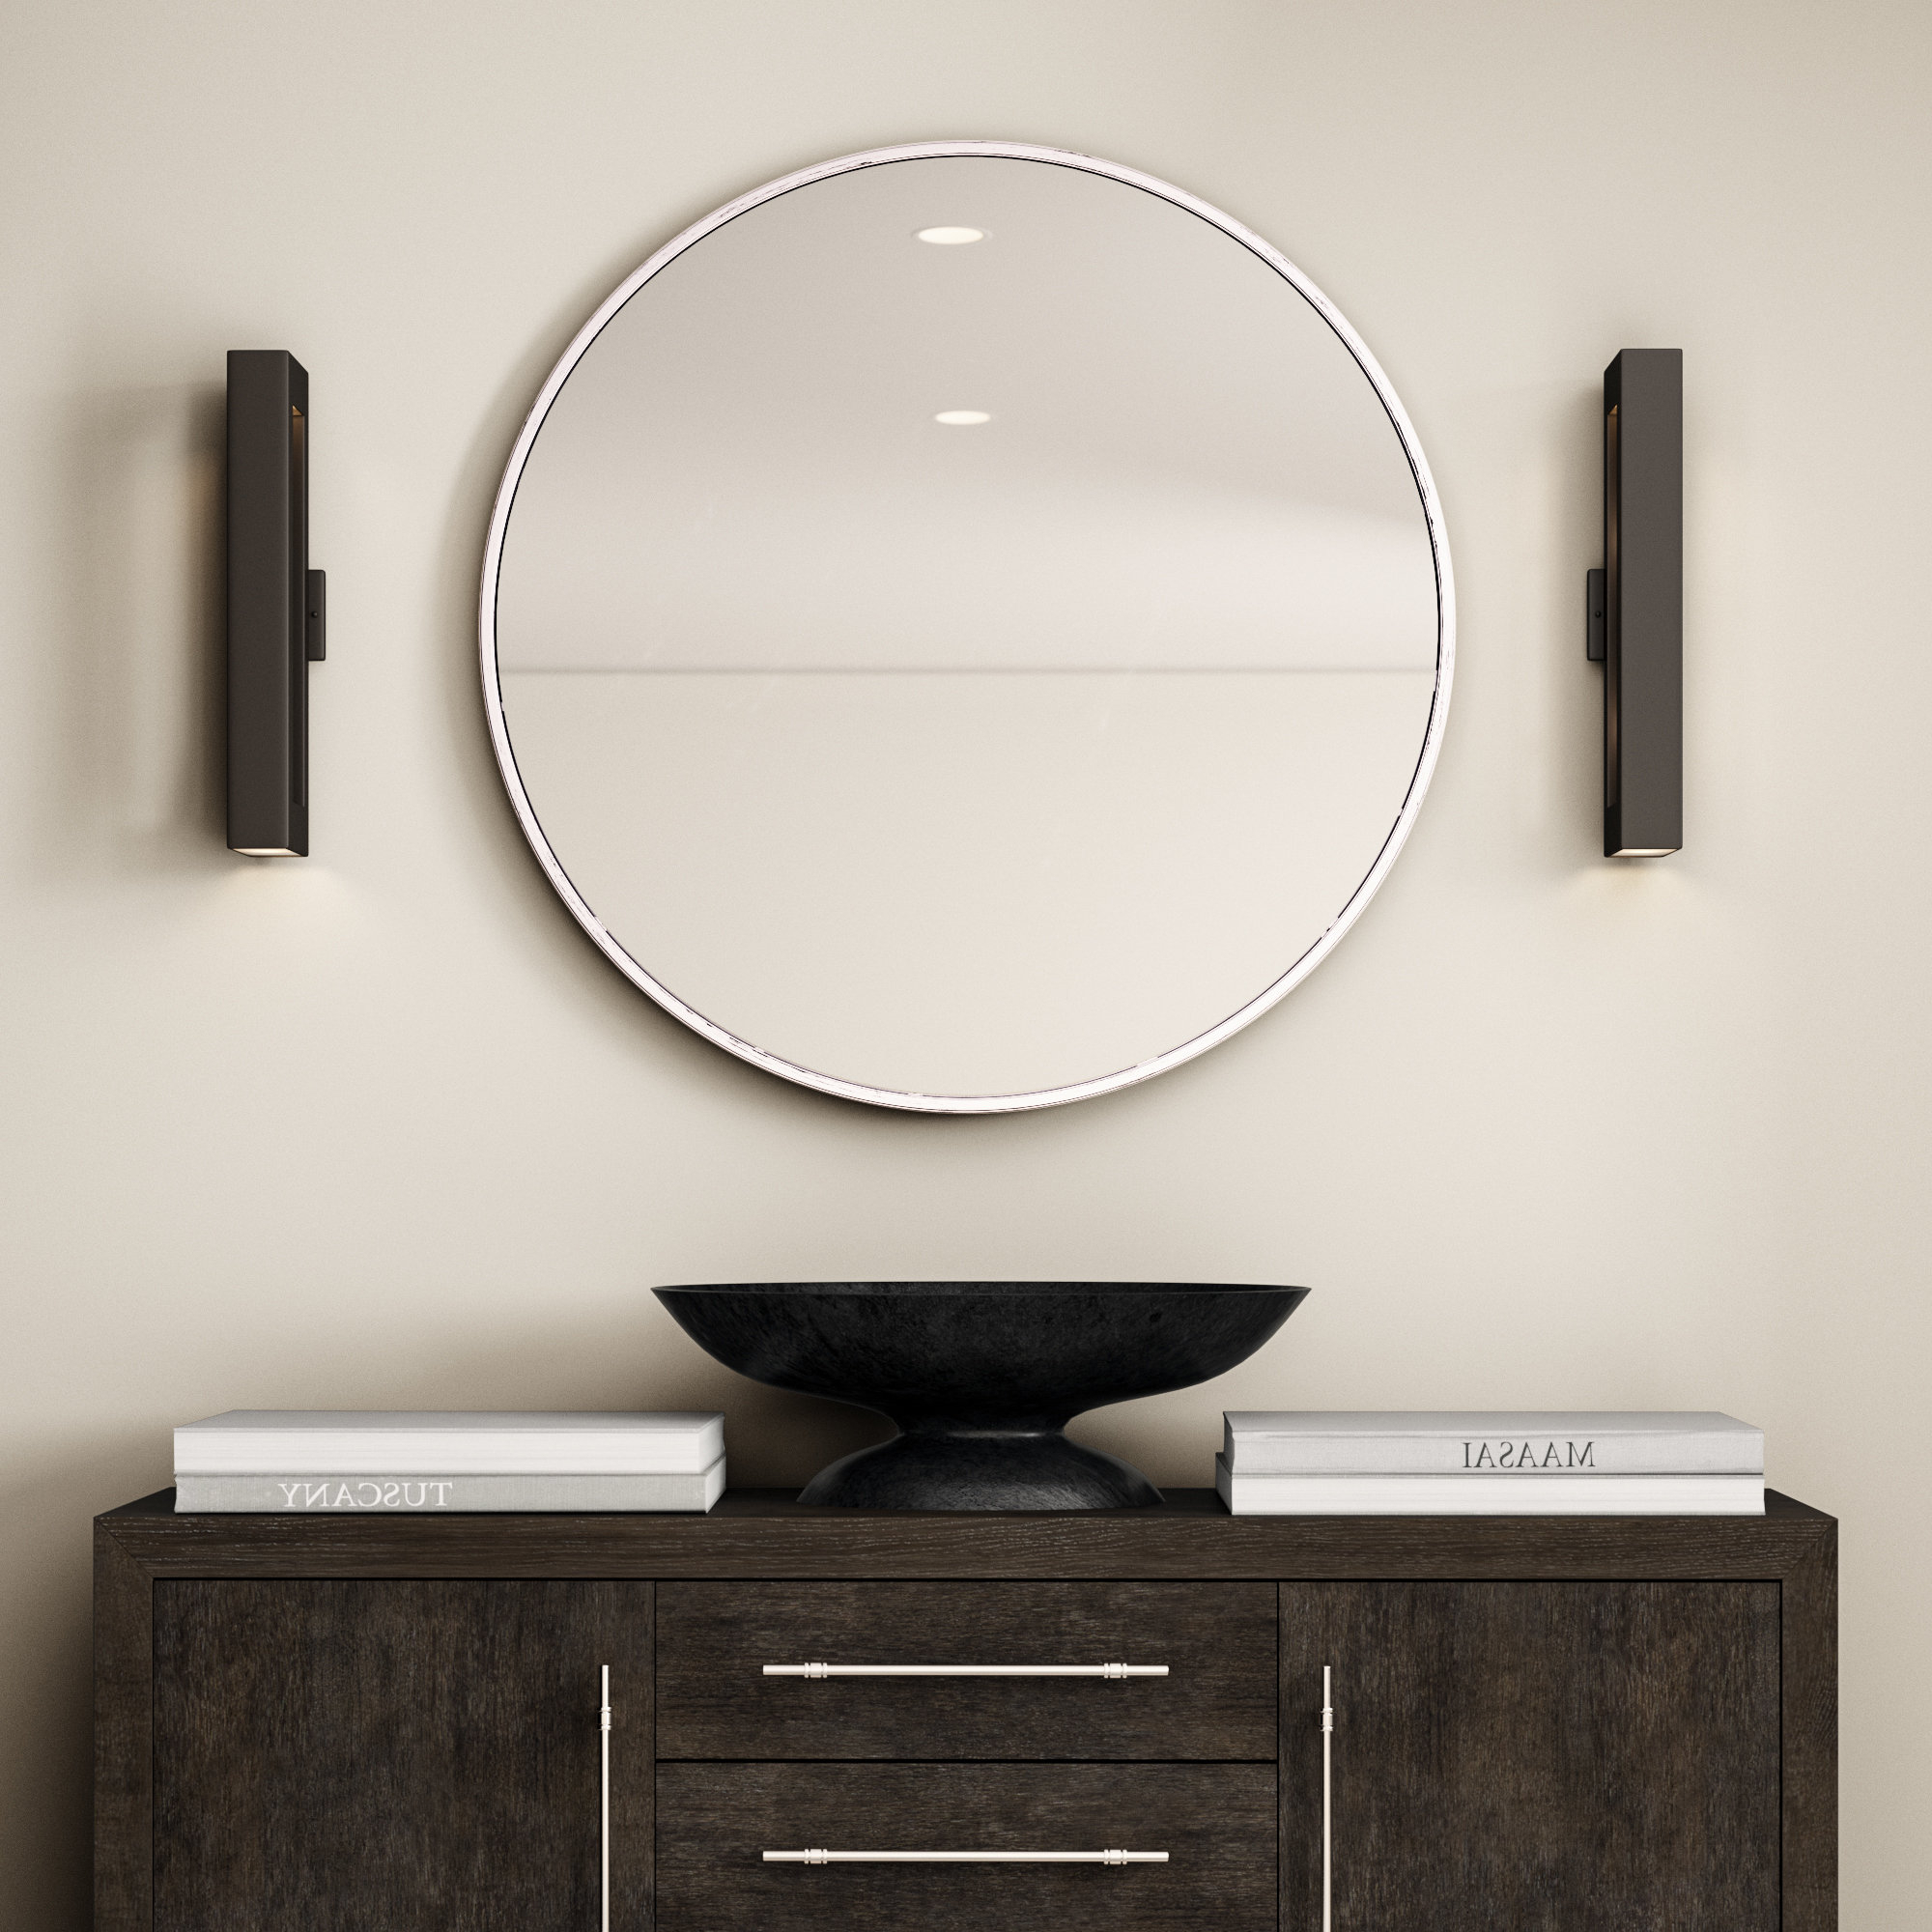 Preferred Needville Modern & Contemporary Beveled Accent Mirror Pertaining To Needville Modern & Contemporary Accent Mirrors (View 18 of 20)